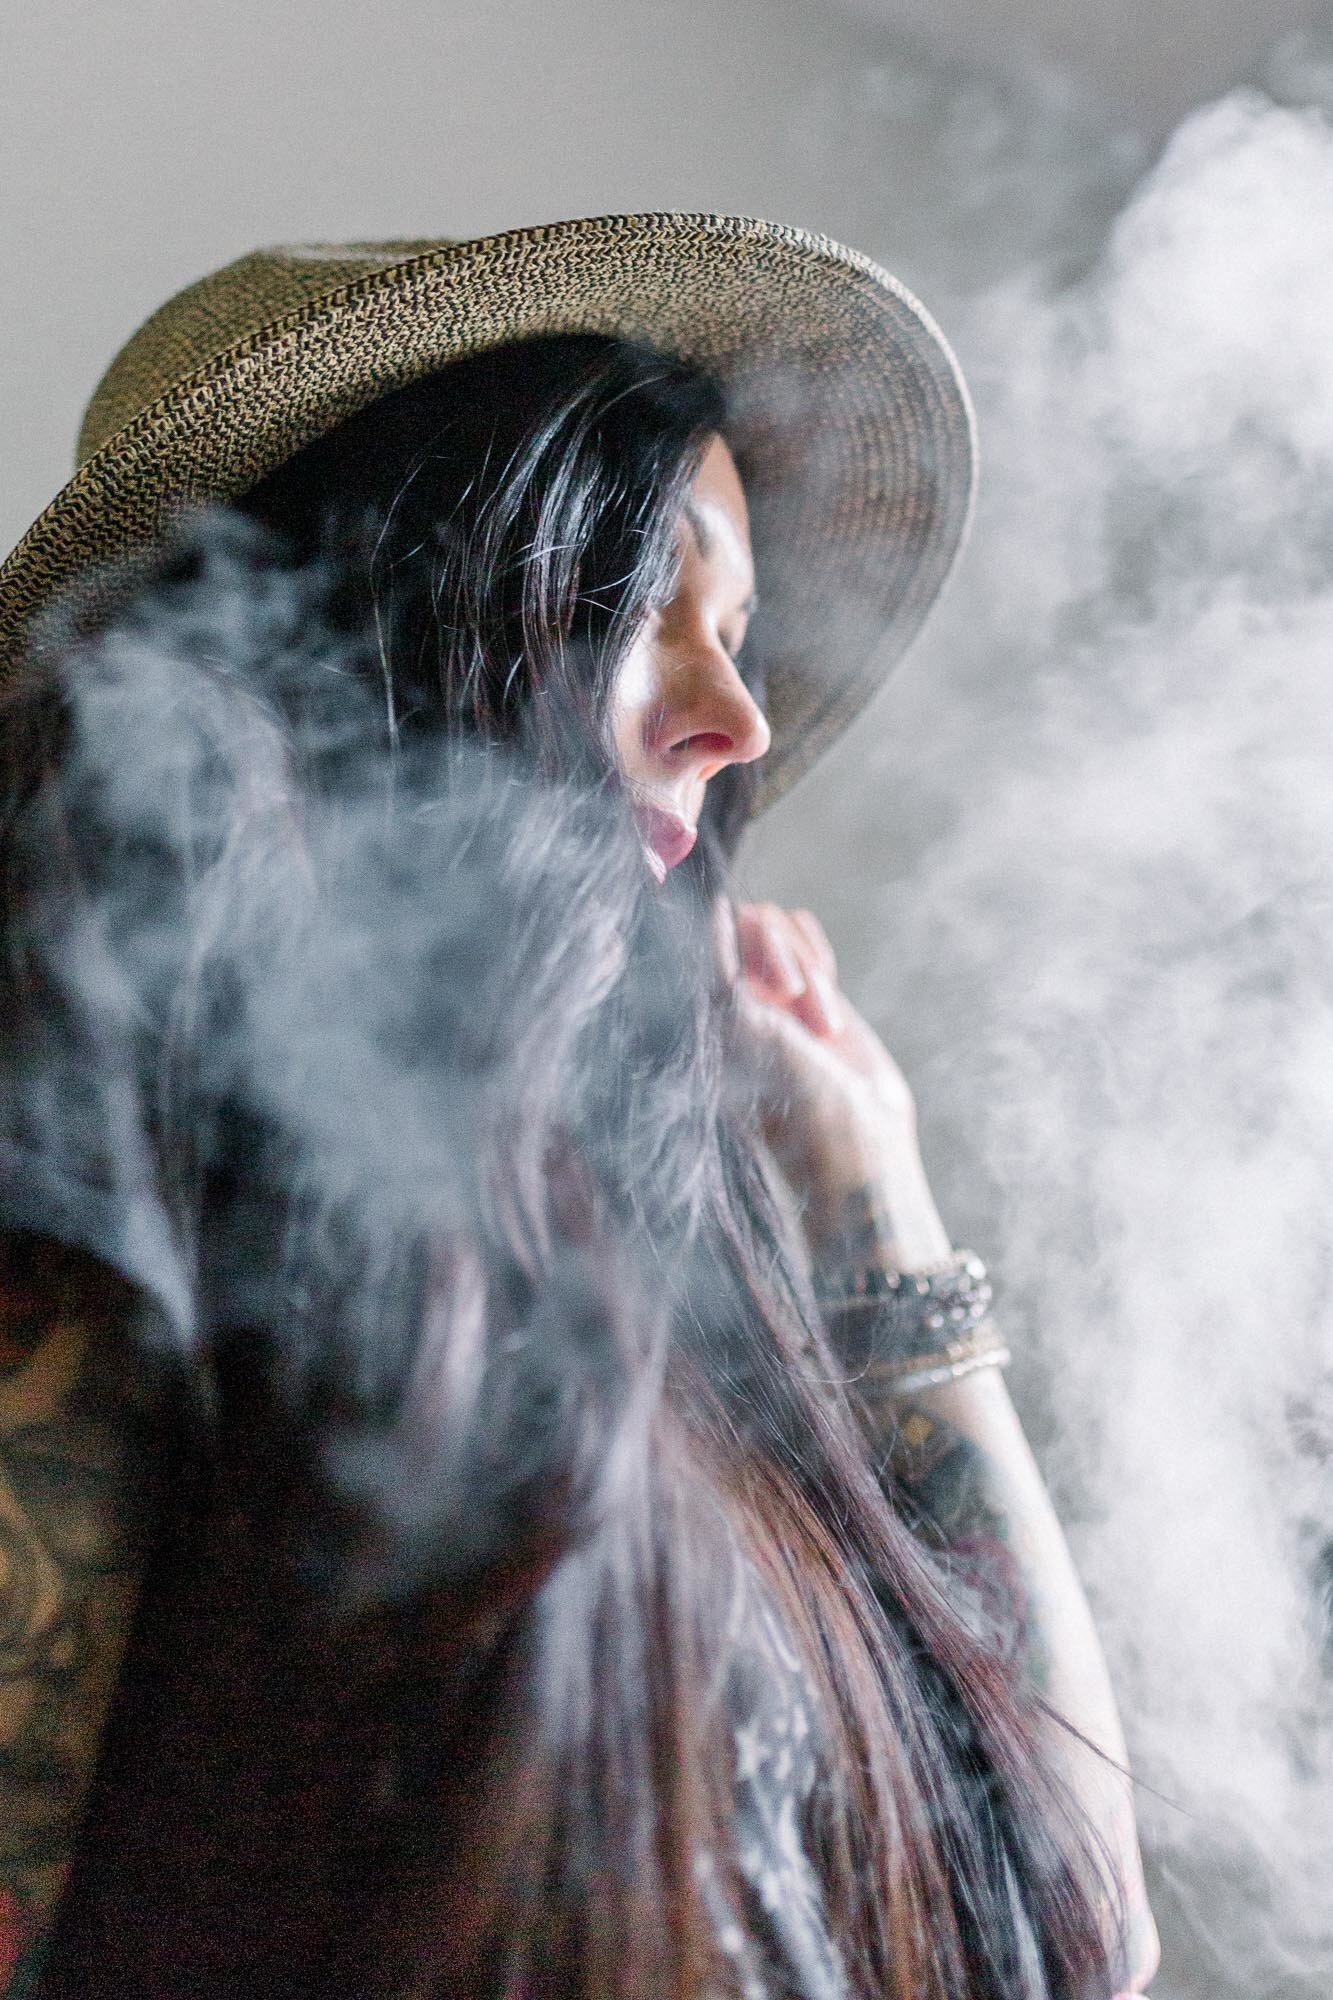 Smokey and artistic shot captured by Staci Addison Photography